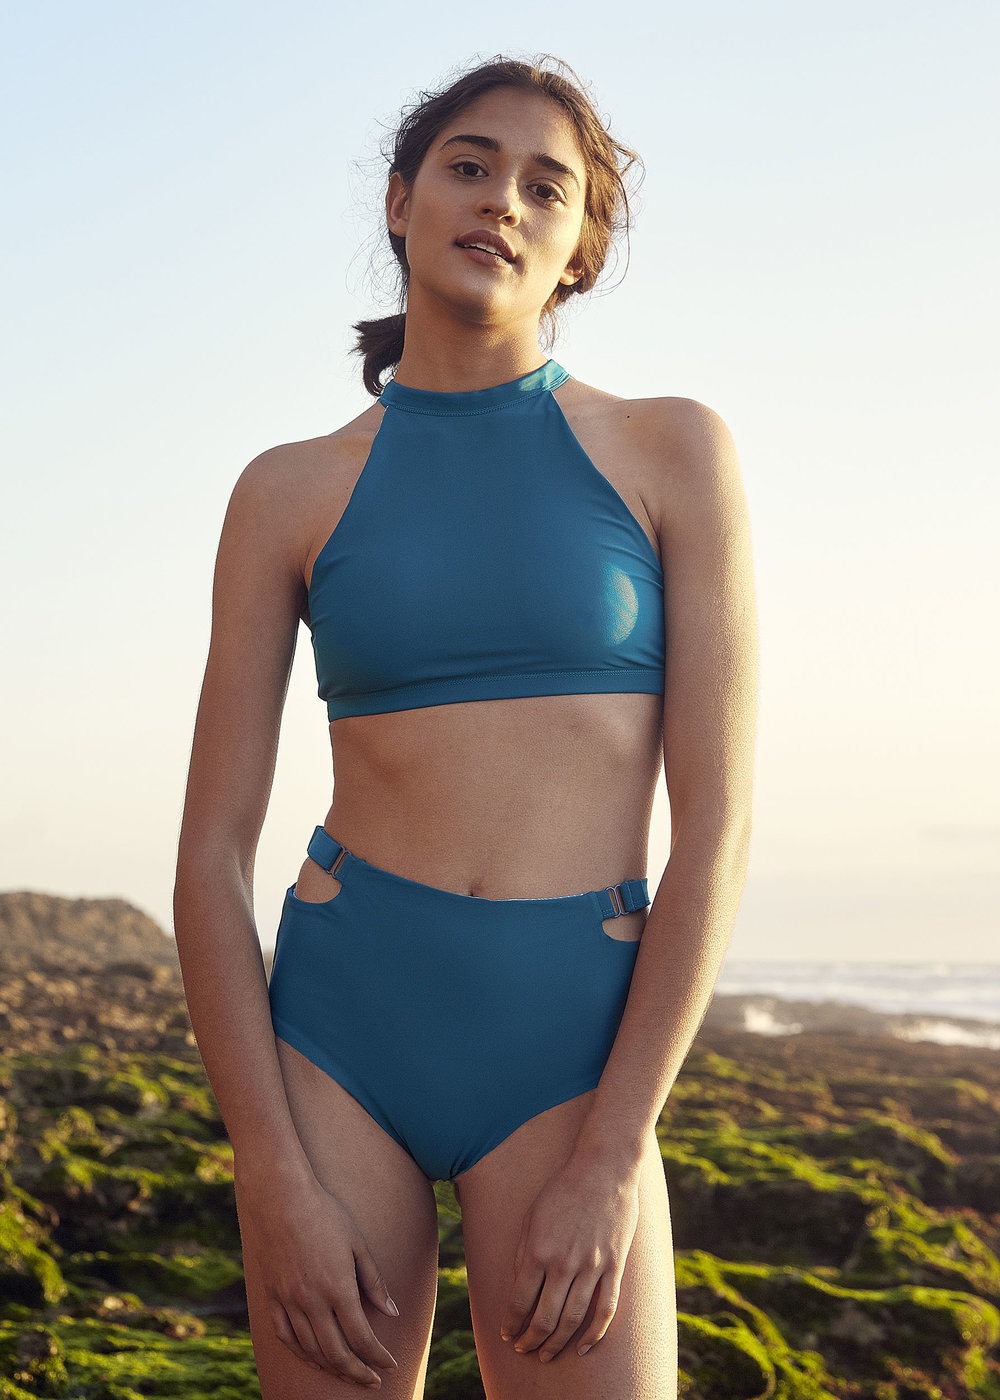 Peniche Top from boo surfwear